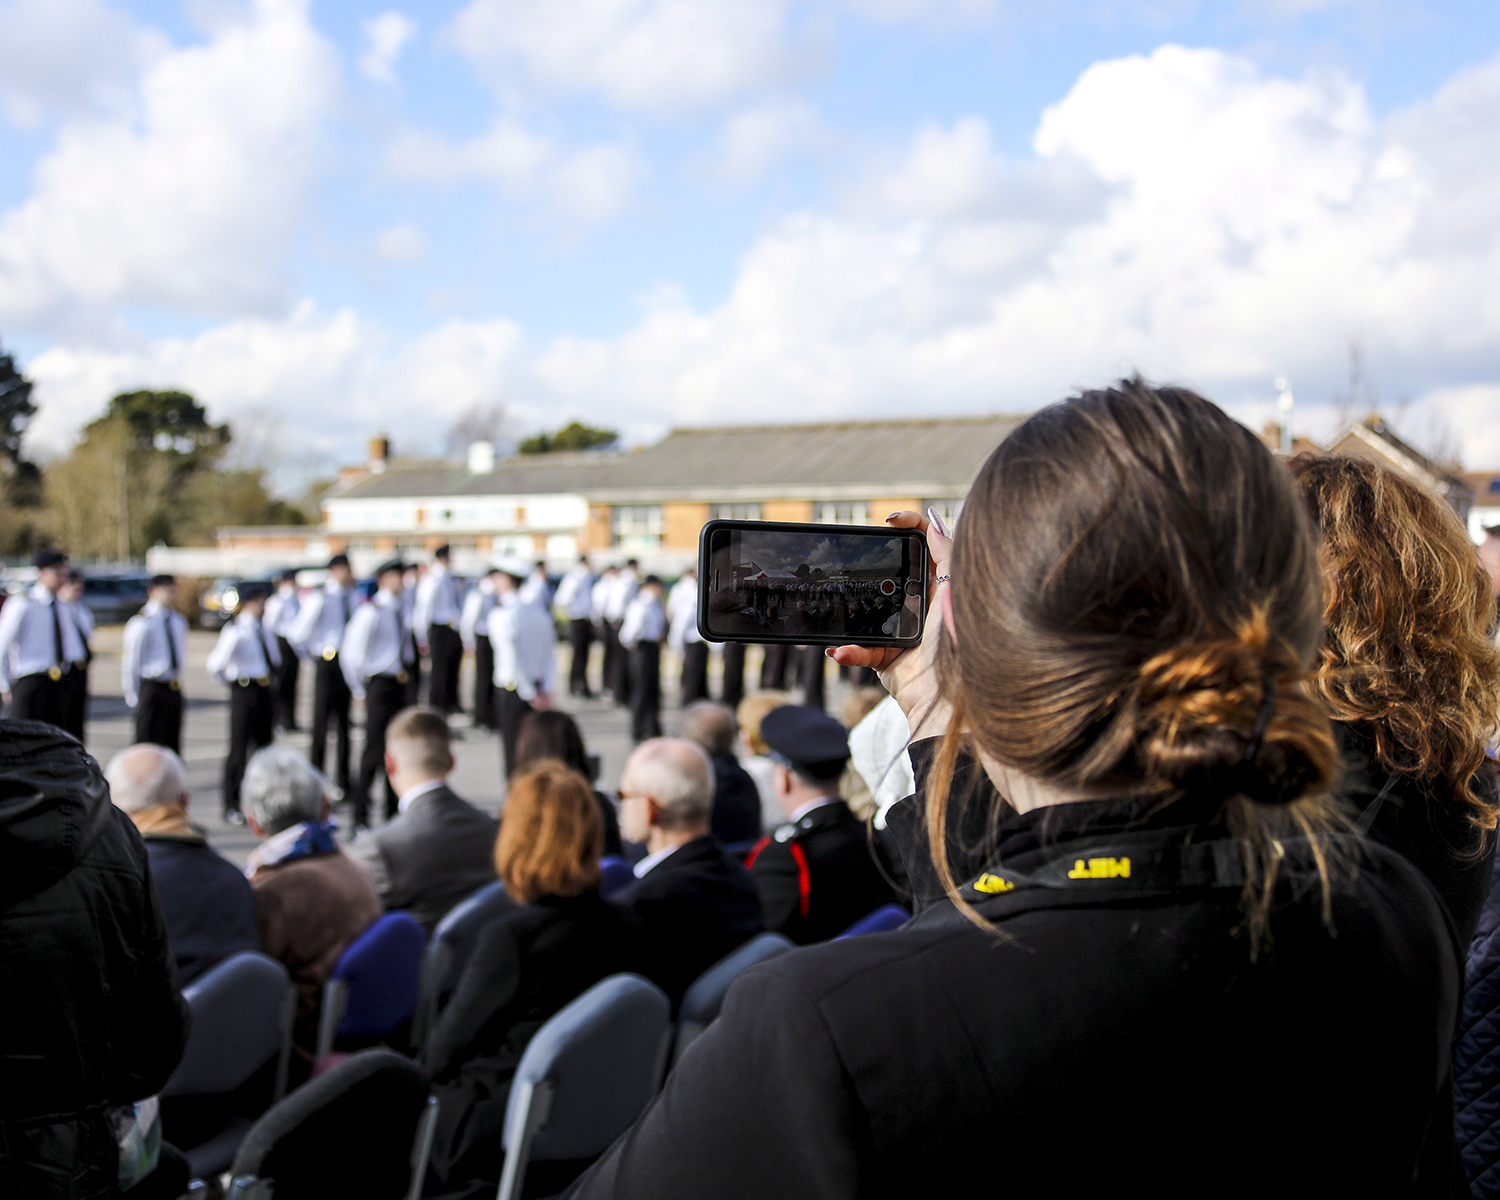 Northbrook College opens its doors to the Royal Navy Combined Cadet Force